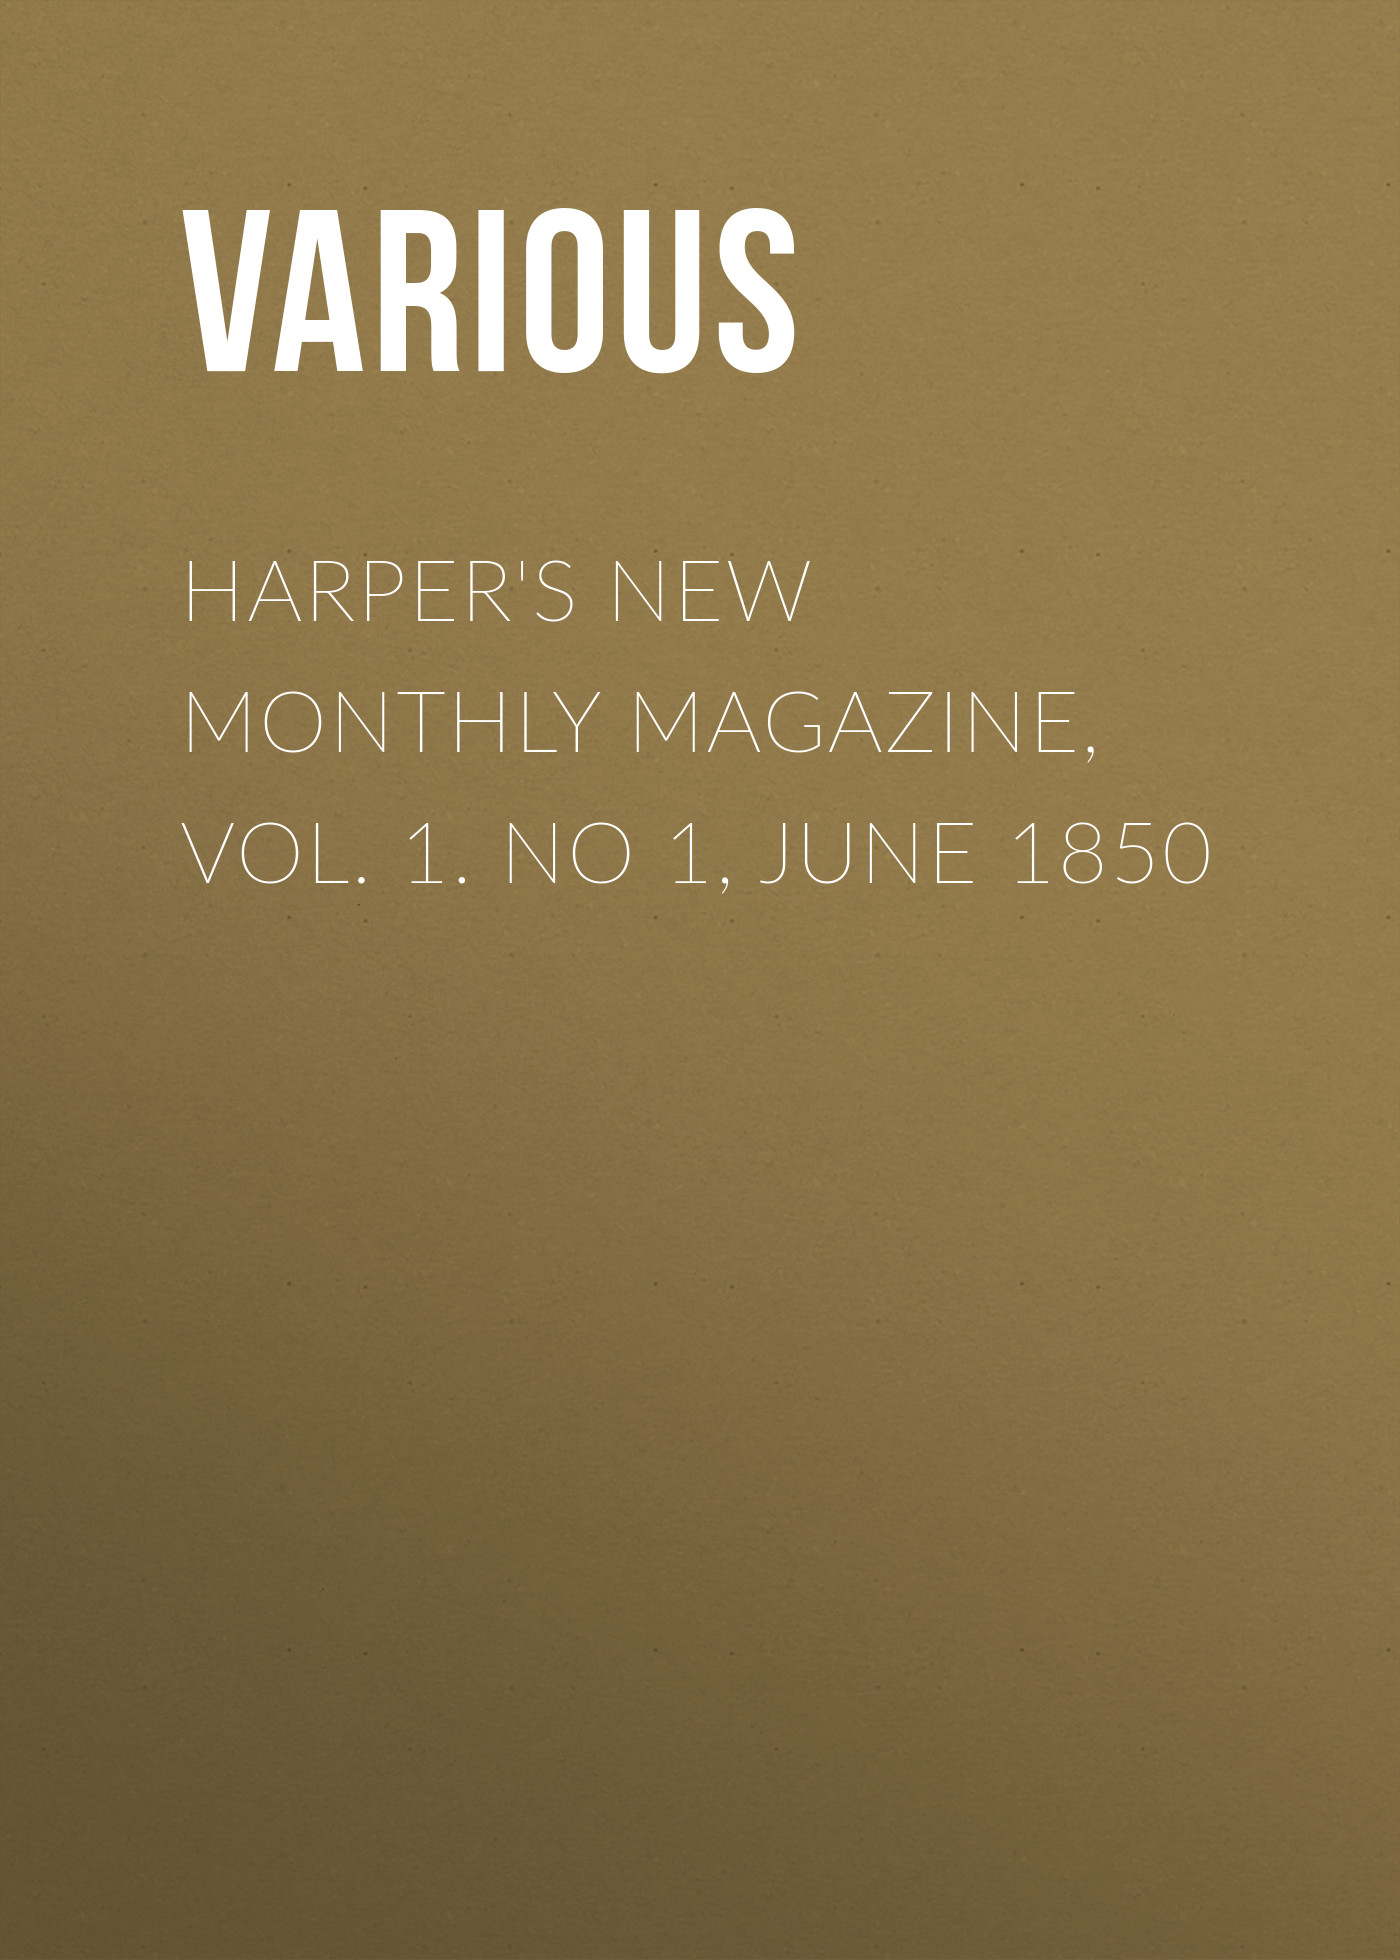 Various Harper's New Monthly Magazine, Vol. 1. No 1, June 1850 new 10 1